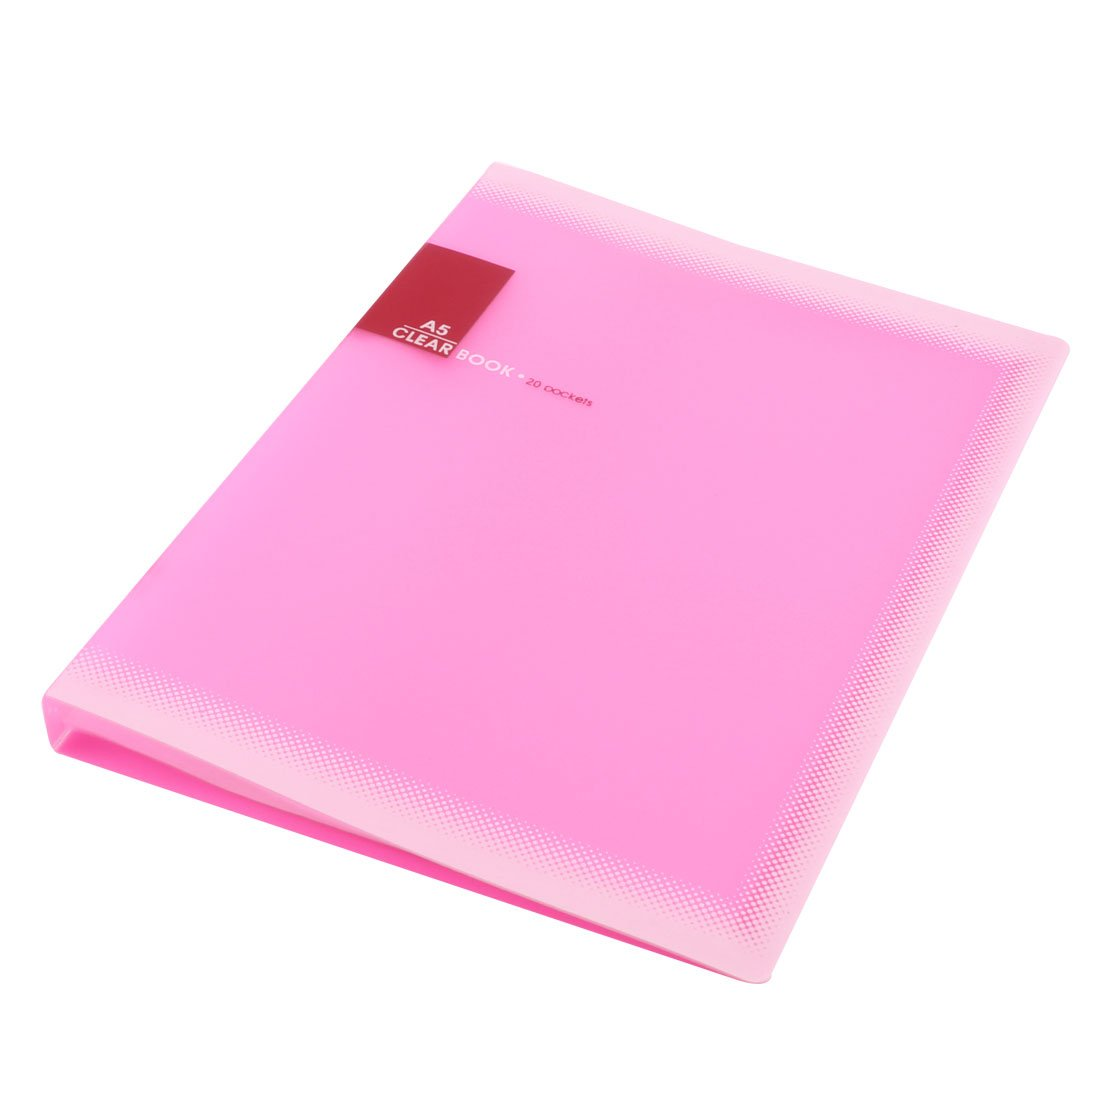 20 Pockets A5 Display Book Office School Students File Paper Document Organizer Folder